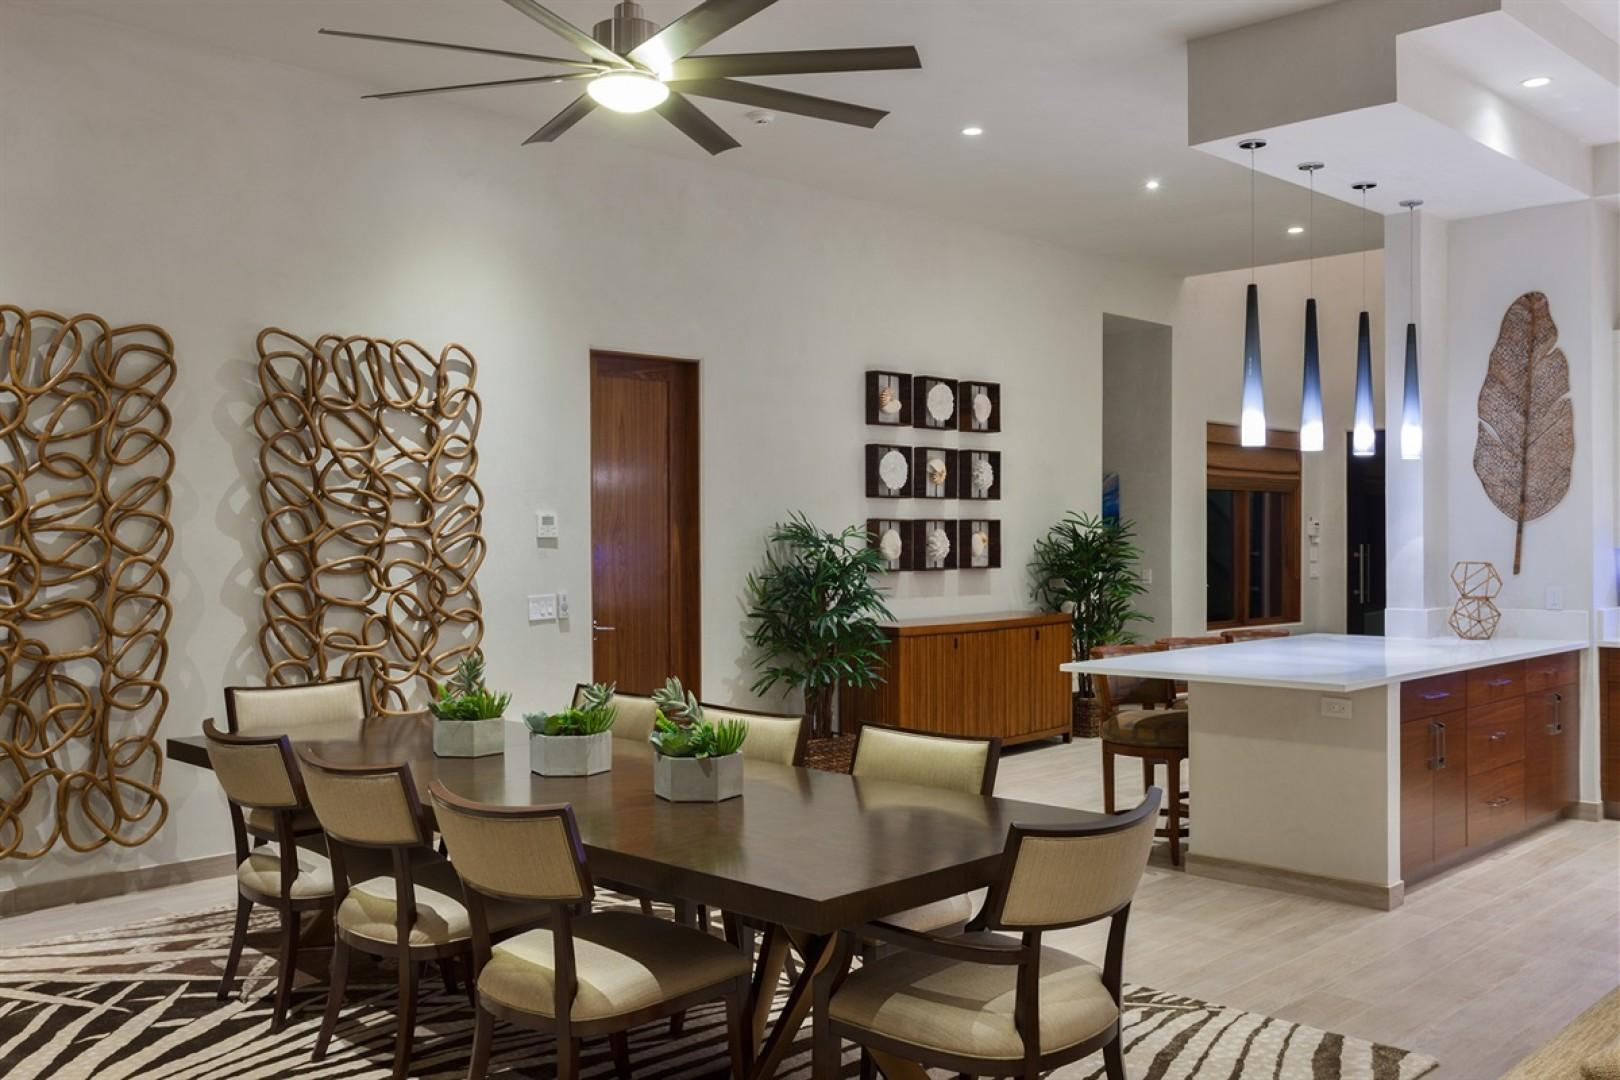 Formal indoor dining area for eight.